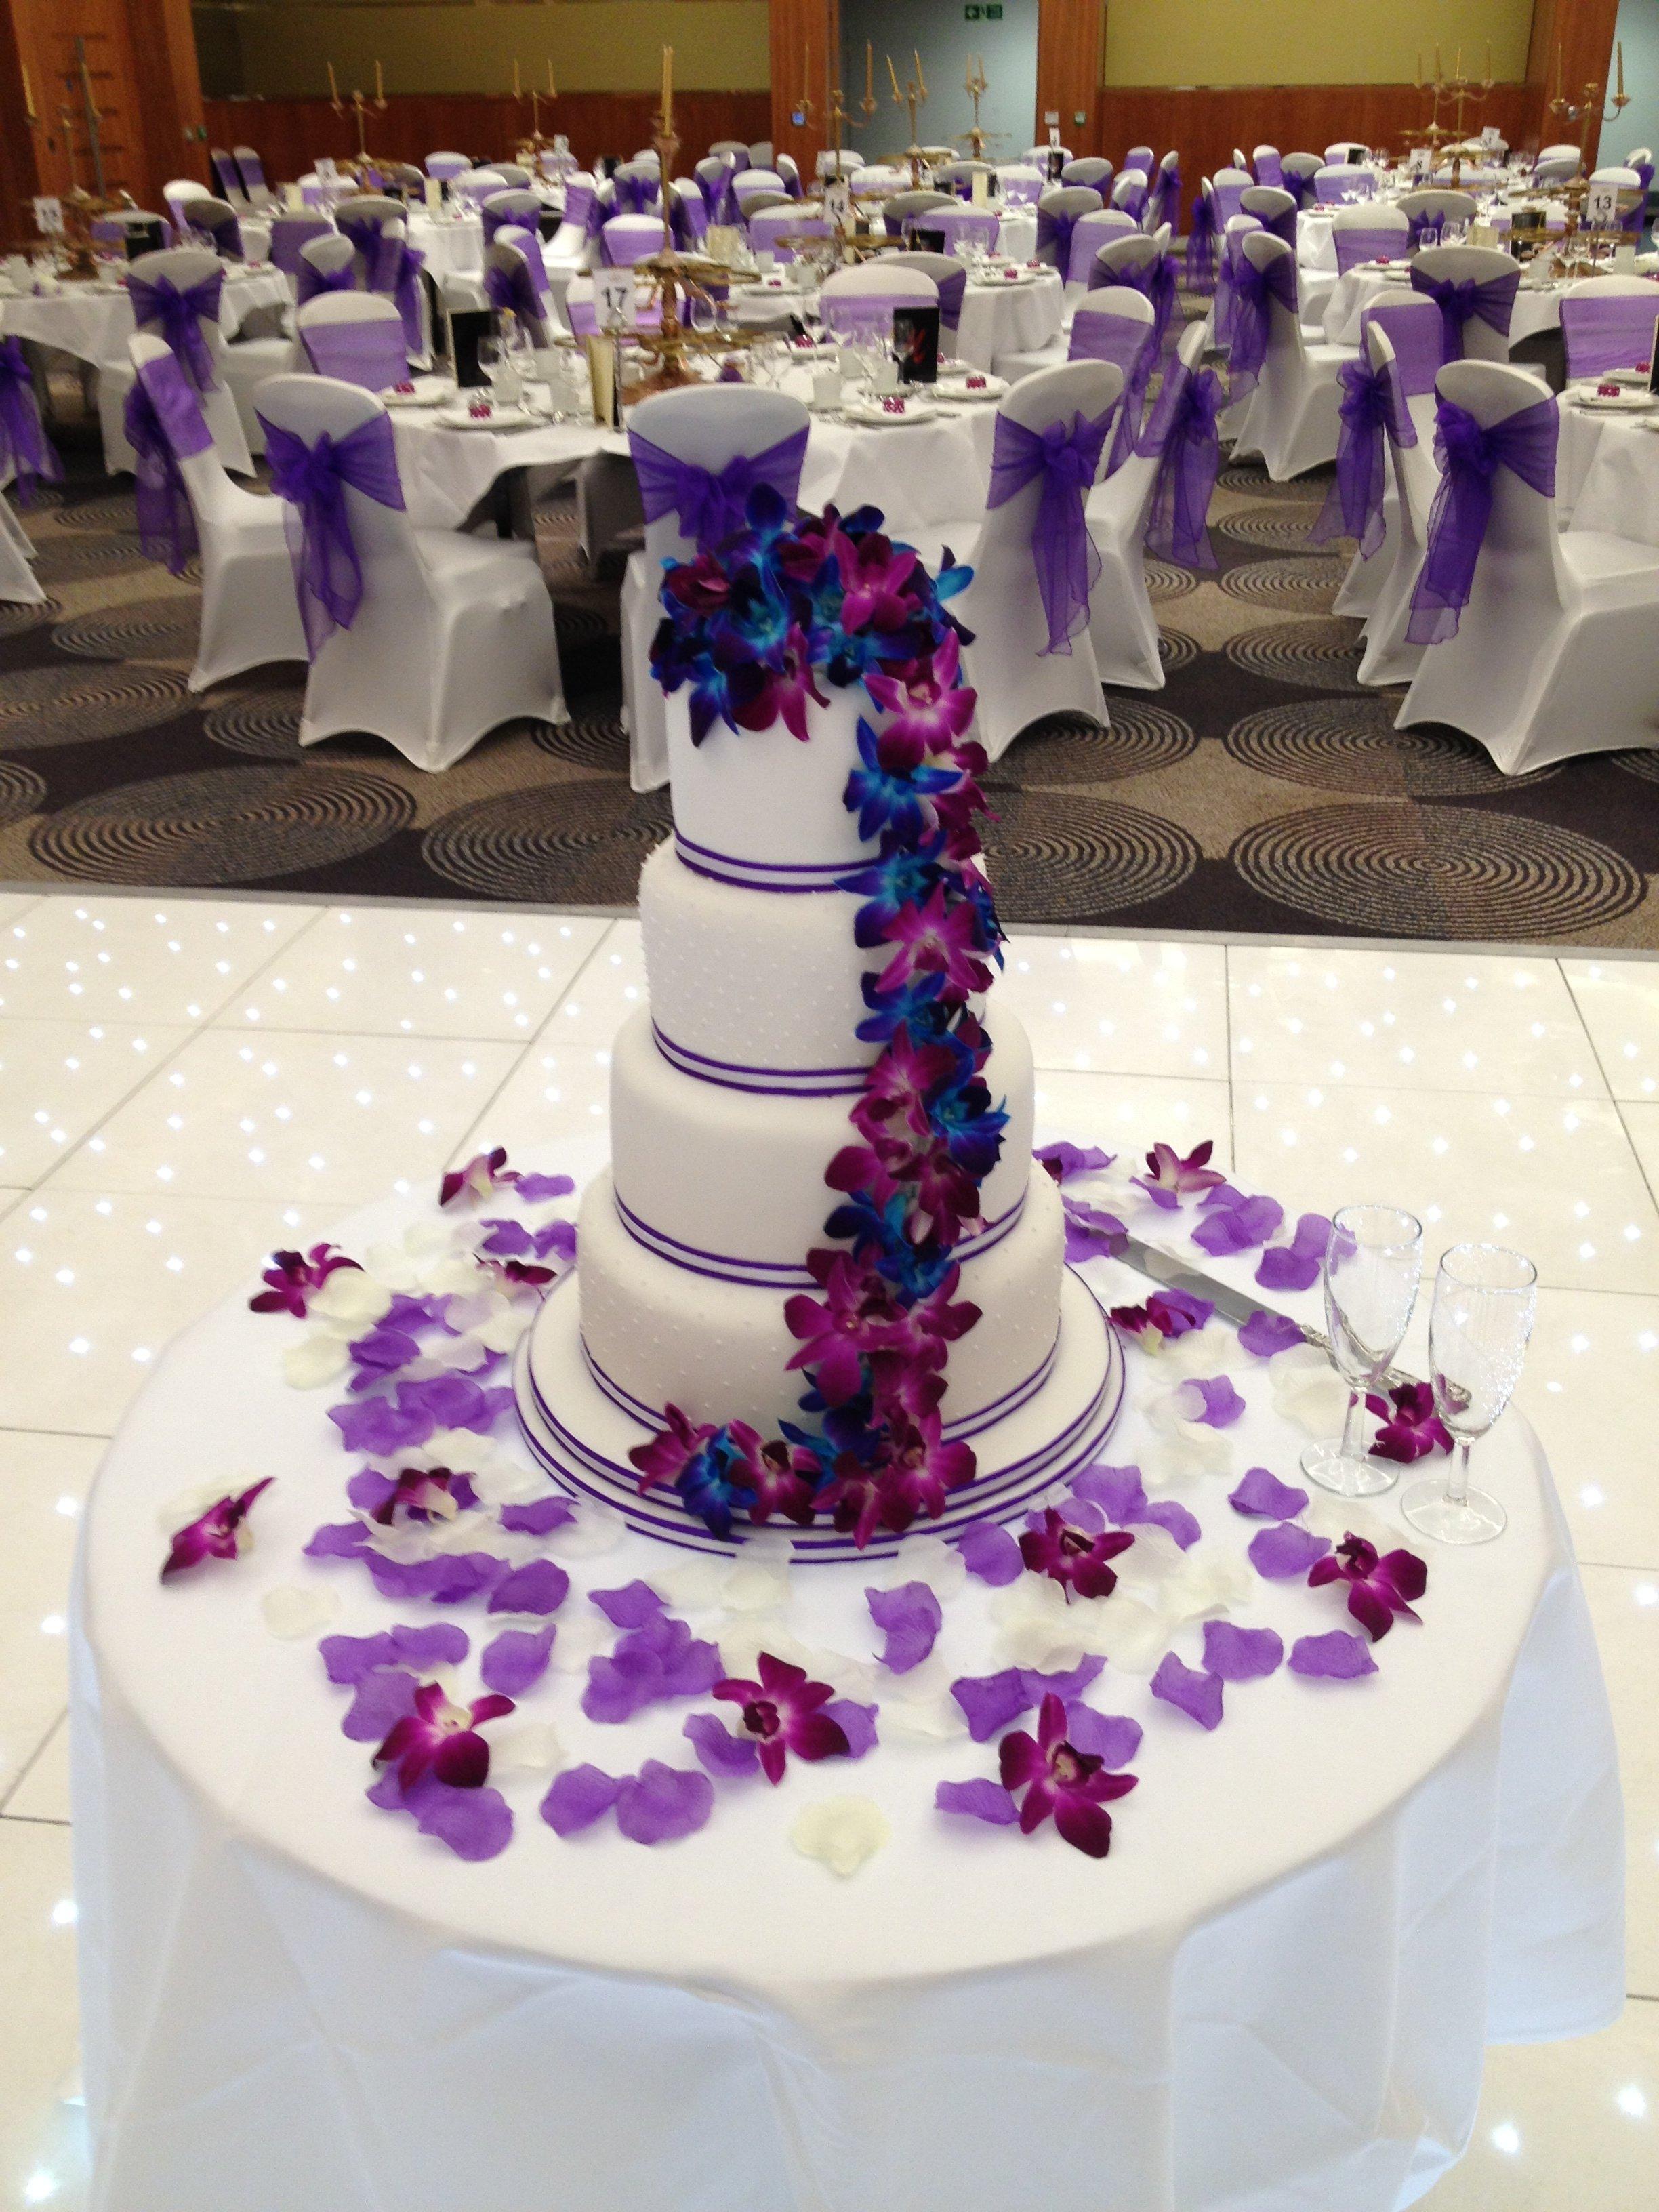 10 Best Turquoise And Purple Wedding Ideas blue purple wedding cakes ideas picture images wedding photos 2020